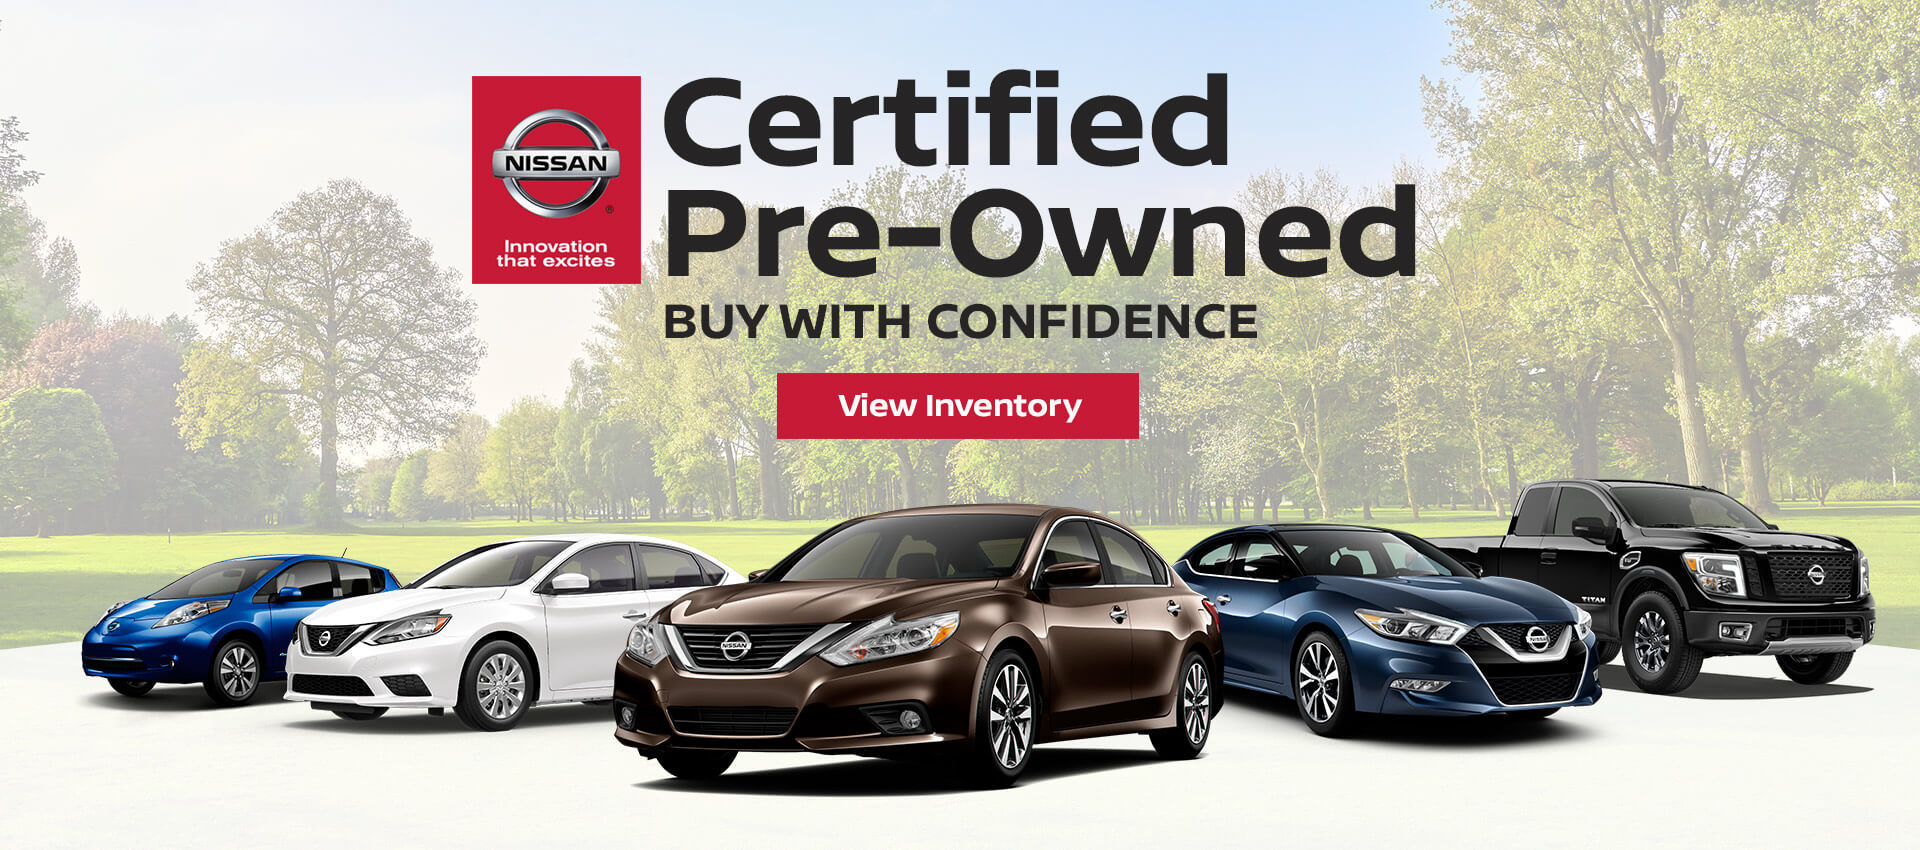 Certified Preowned Nissan